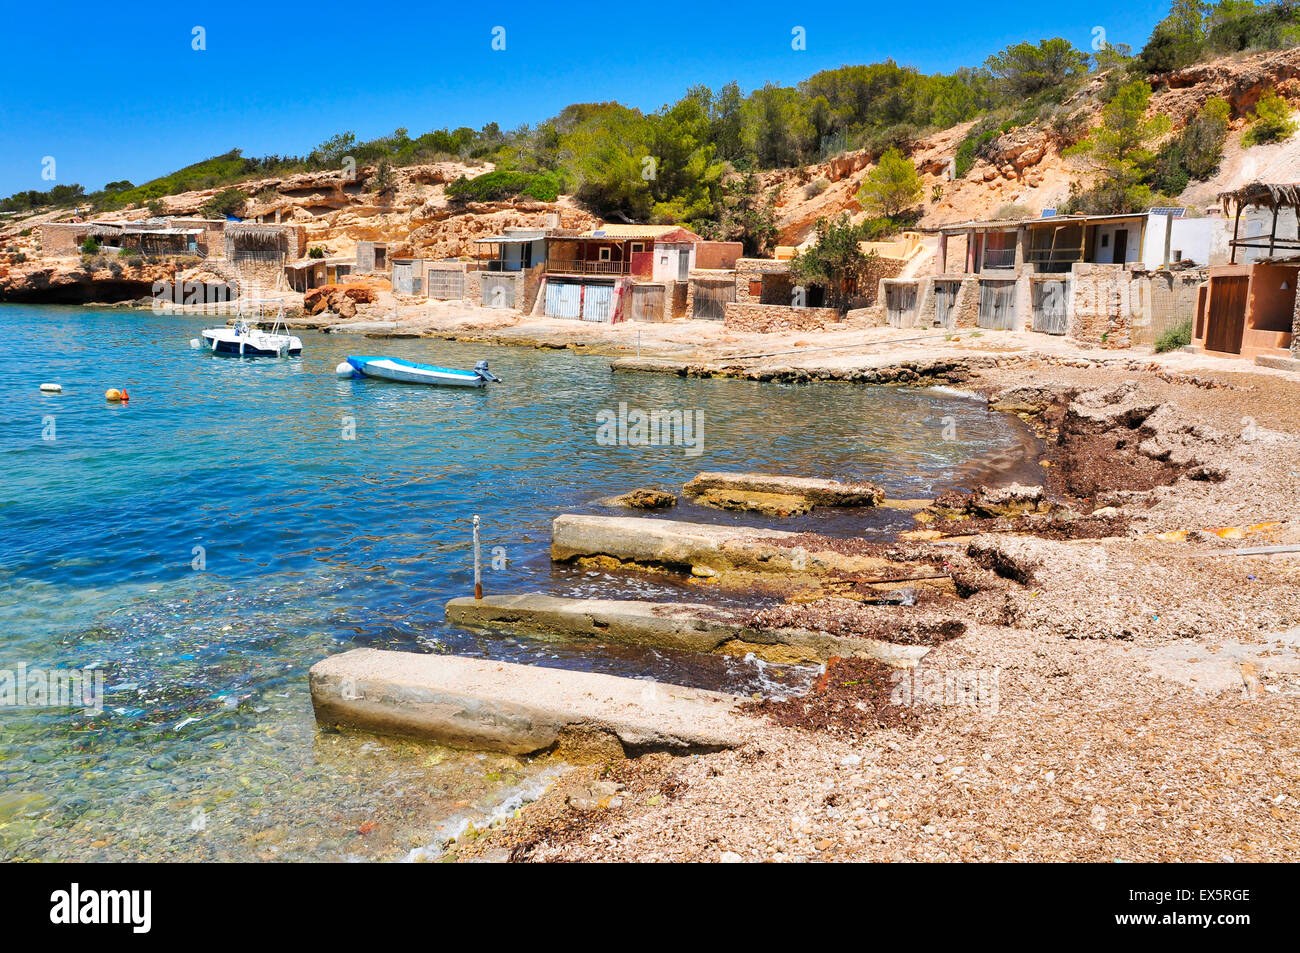 a view of the Cala Corral cove in Ibiza Island, Spain, with its traditional fishermen shelters - Stock Image